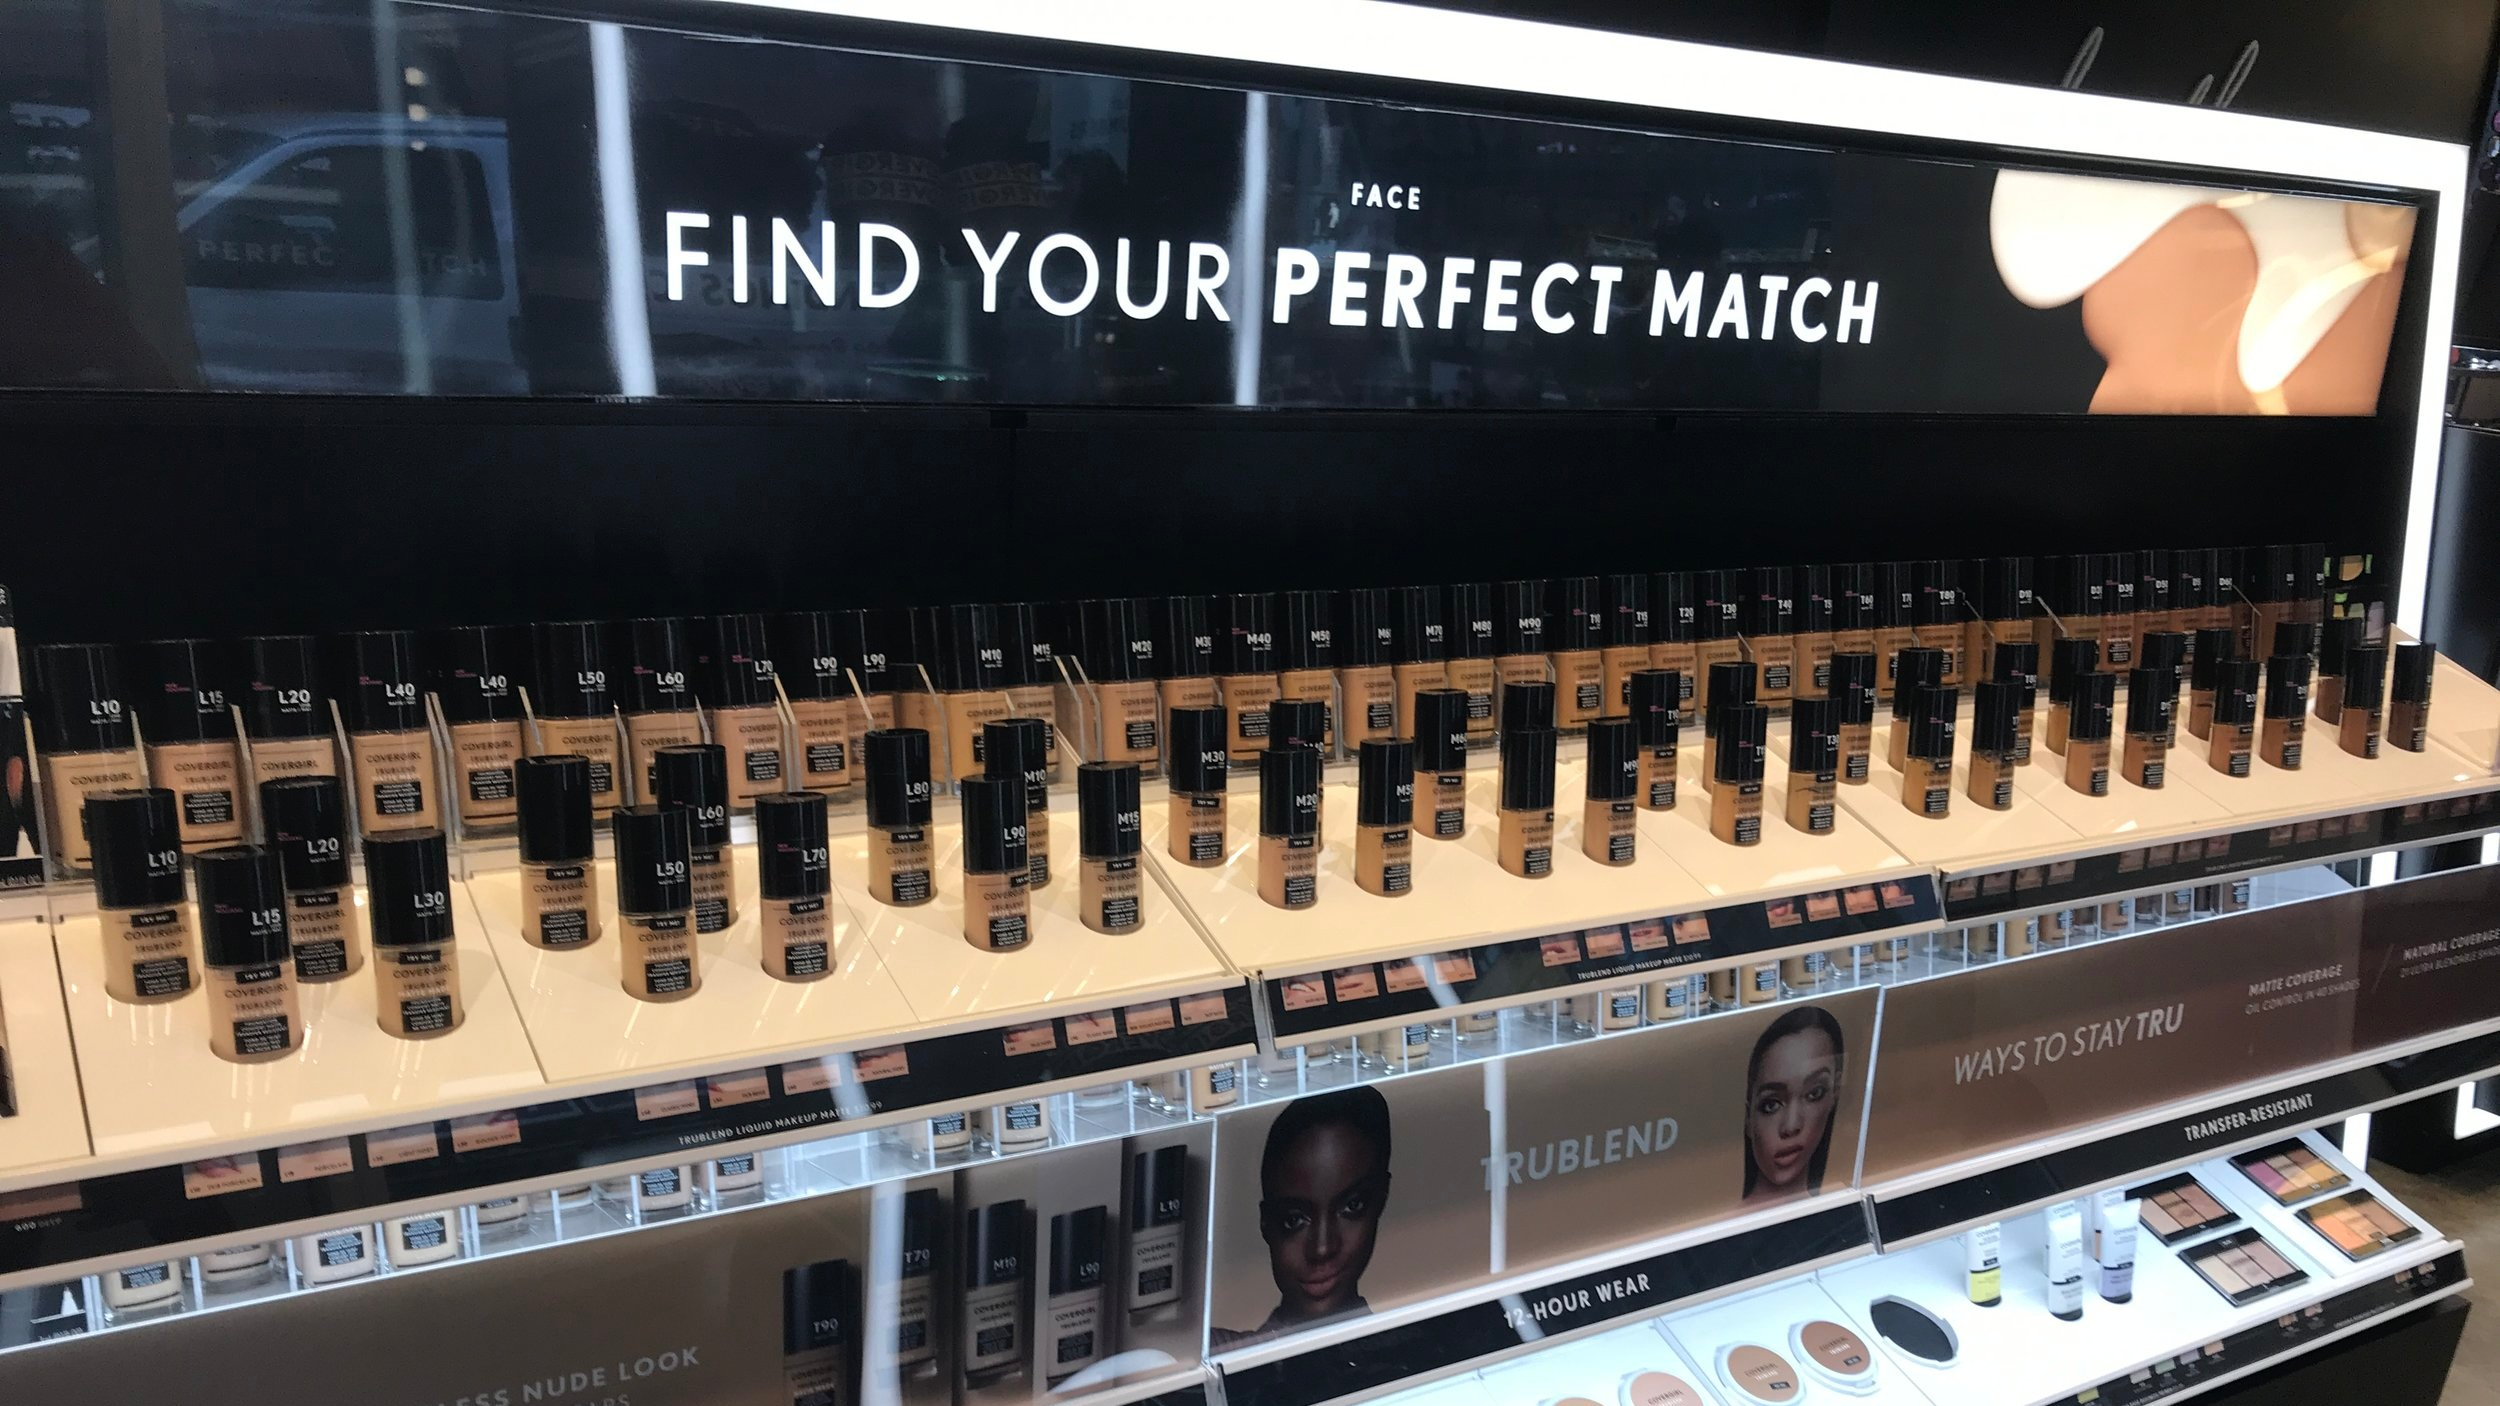 COVERGIRL's display of the TruBlend Matte Made foundation that comes in 40 shades.